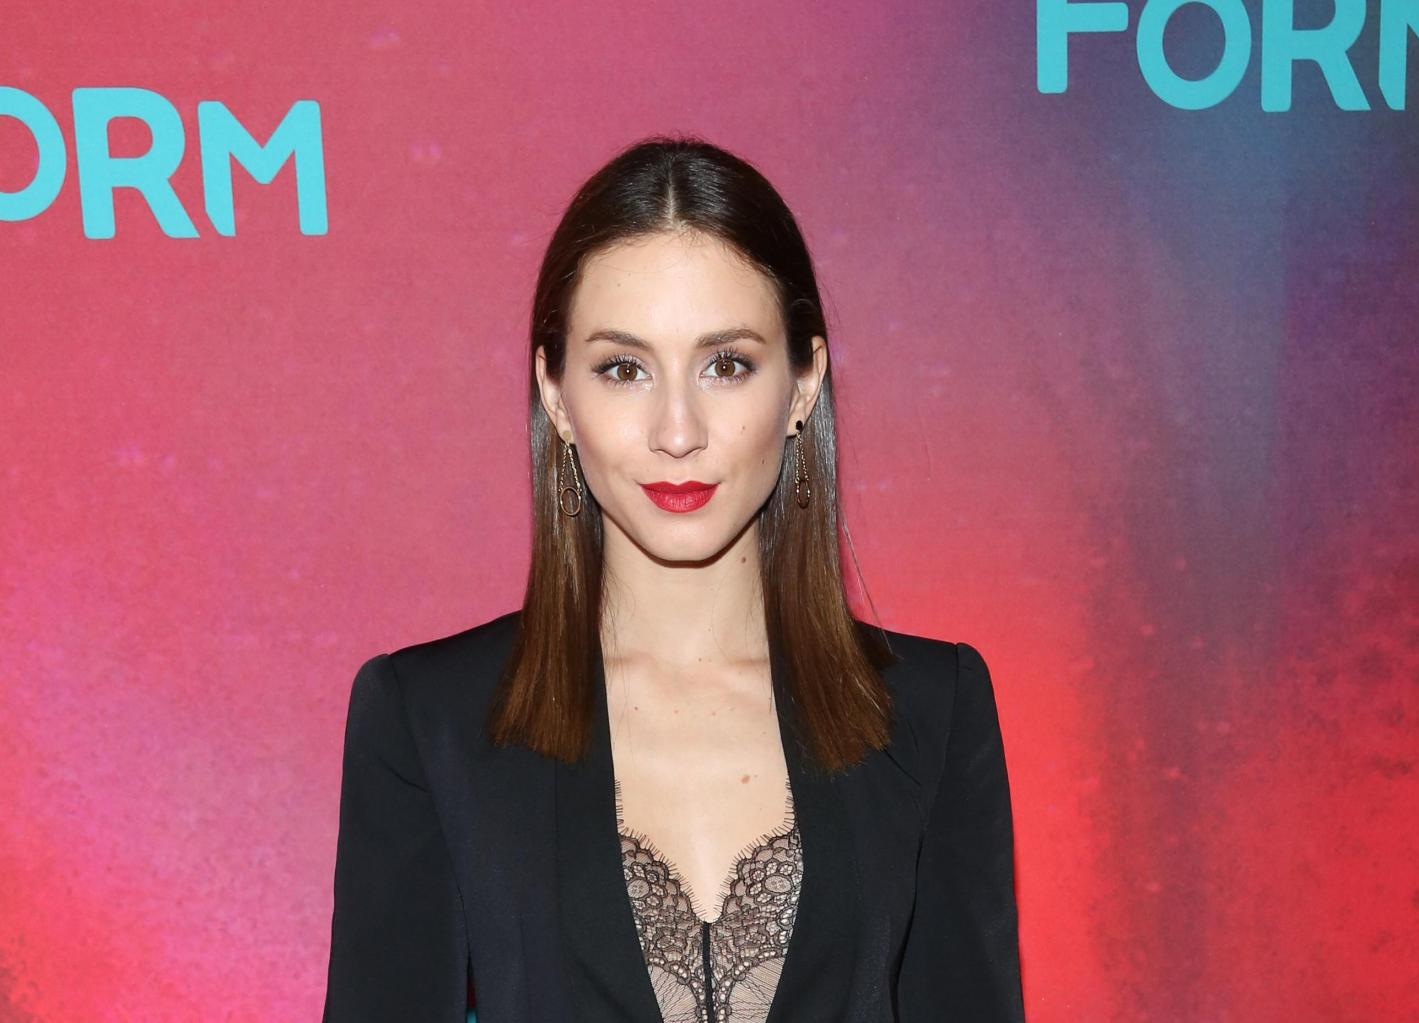 'Pretty Little Liars' Star Troian Bellisario Opens Up About Her Struggle With Mental Illness For Lenny Letter